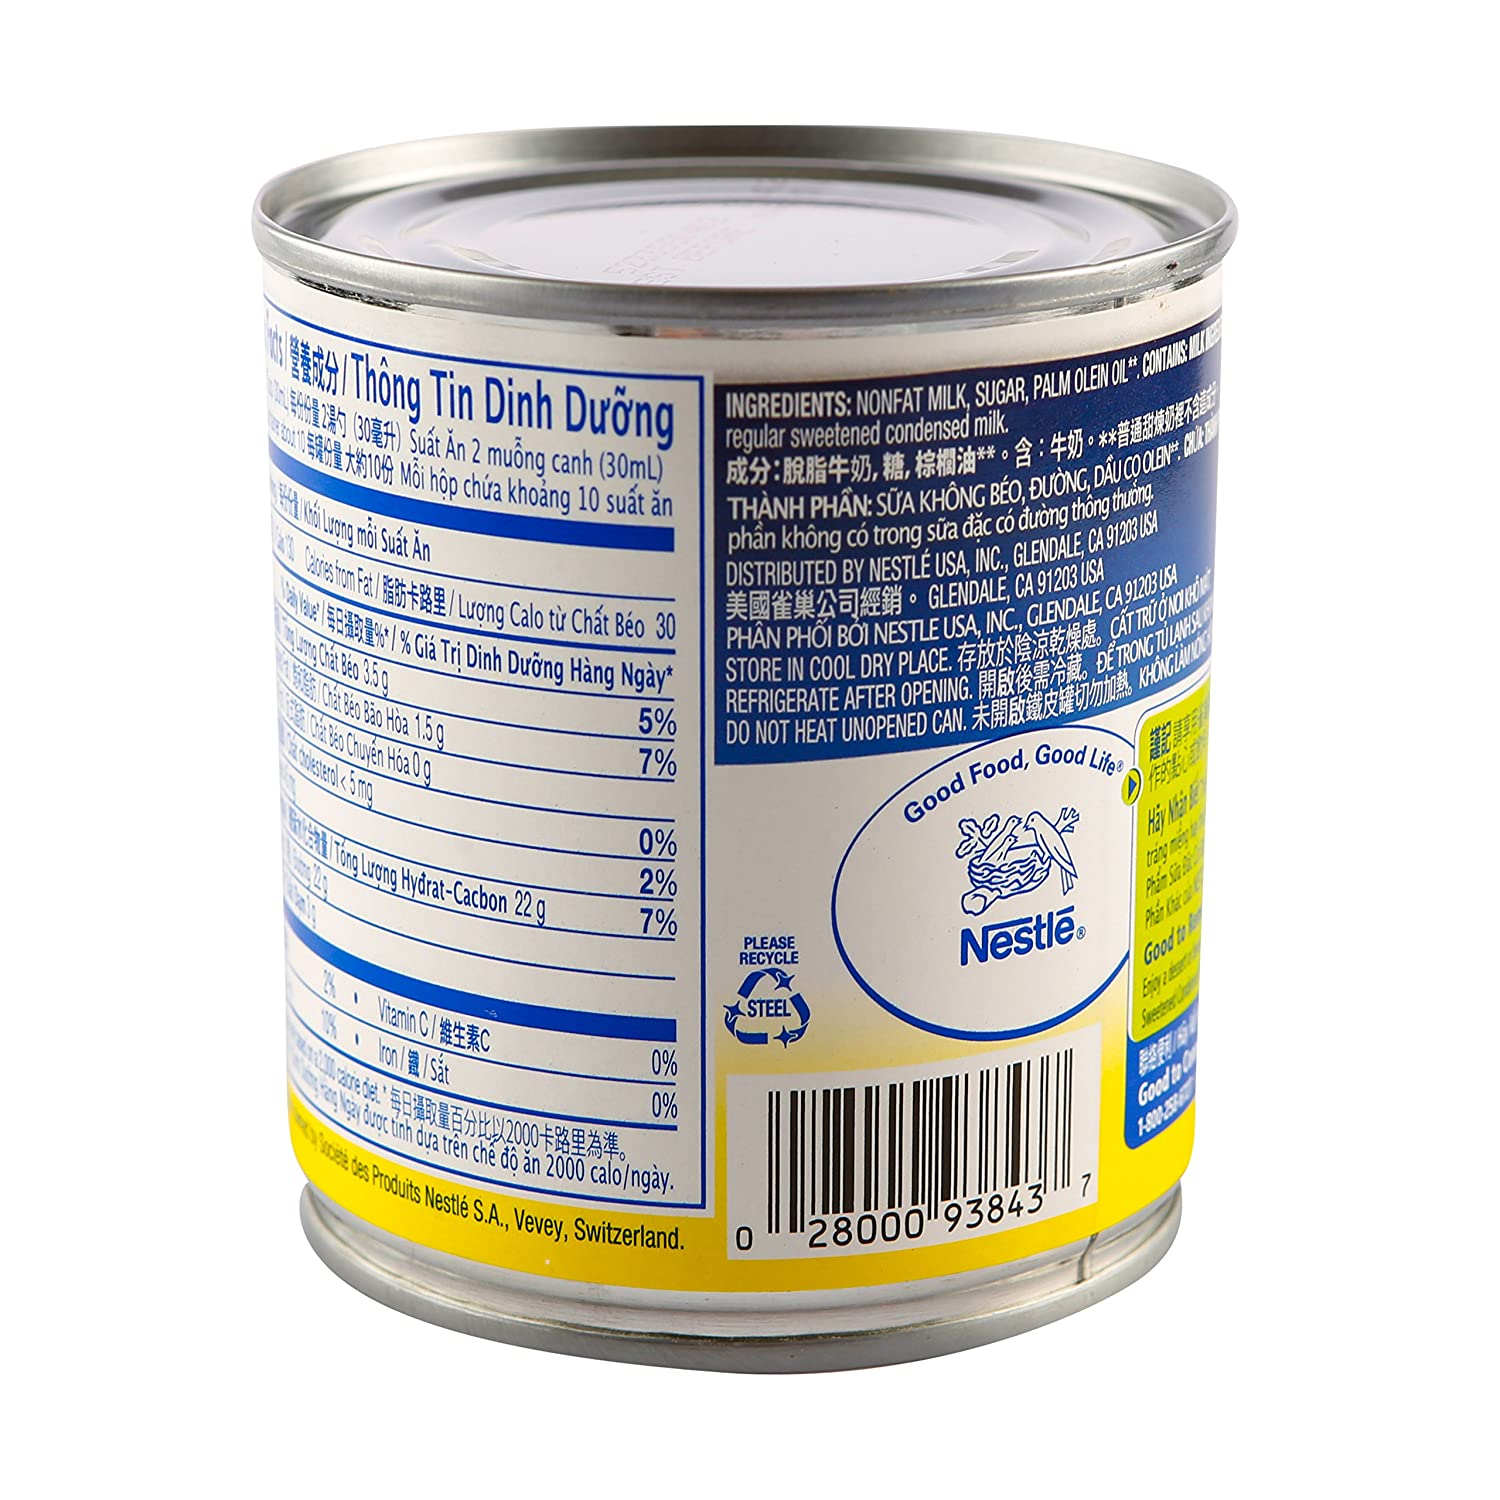 large nestle sweetened condensed filled dairy product san pham sua dac co duong va ca thanh phan khac 14 oz s7w4Kv0jiA